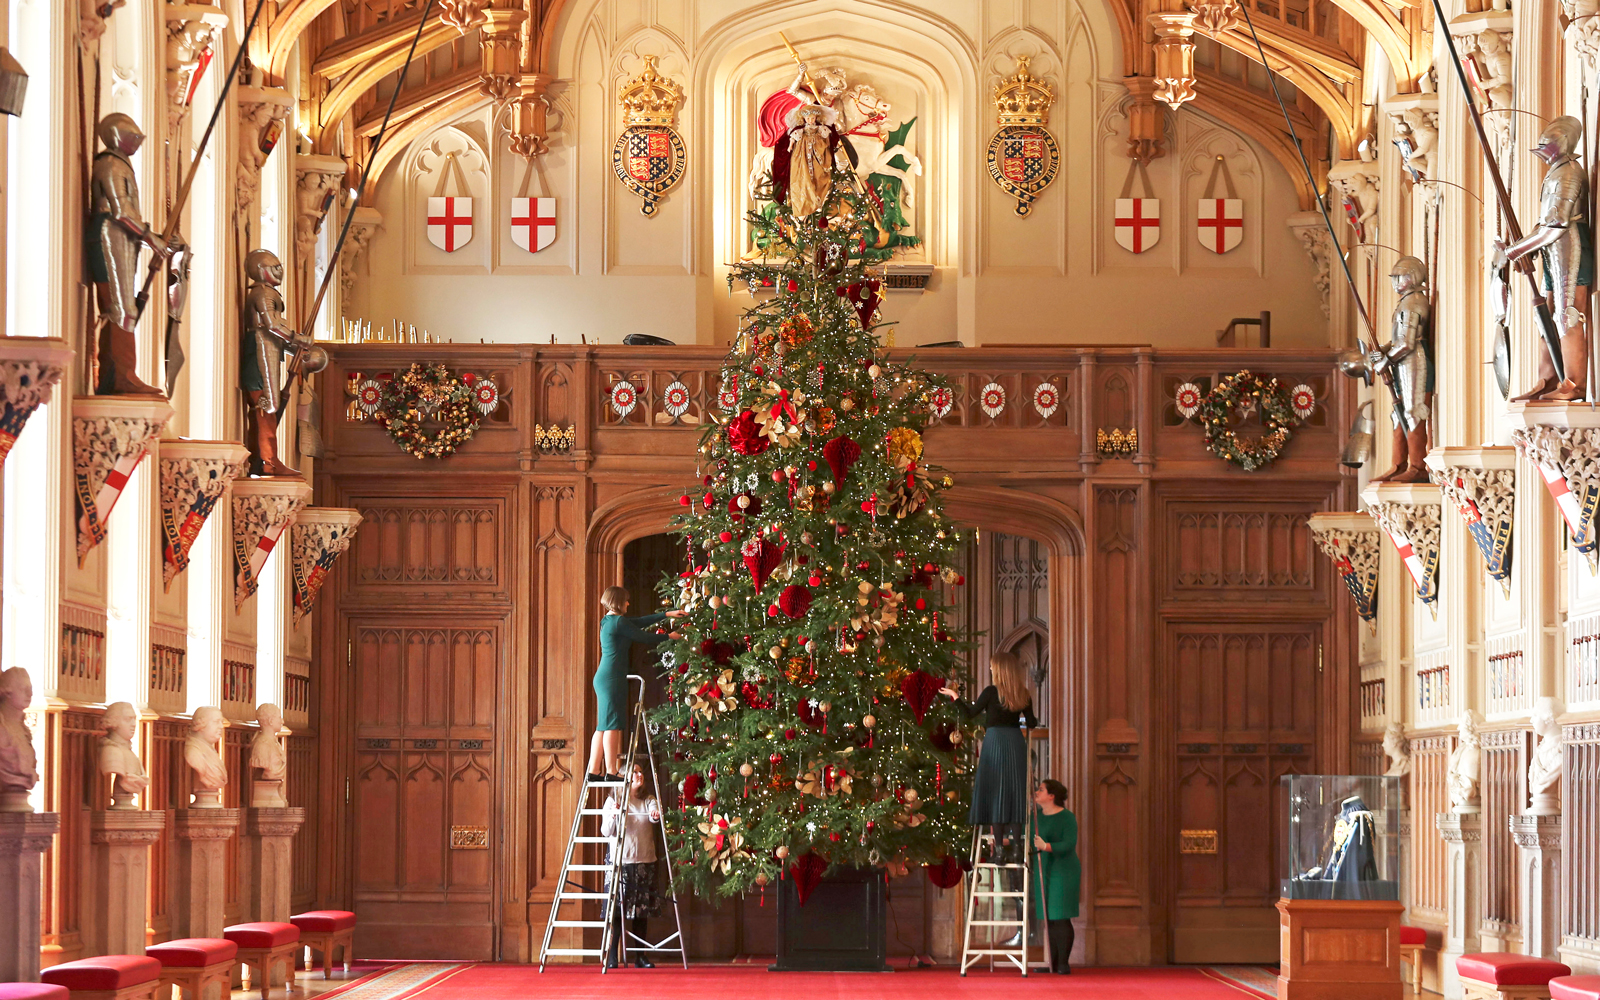 Windsor Castle S Christmas Decorations Are Seriously